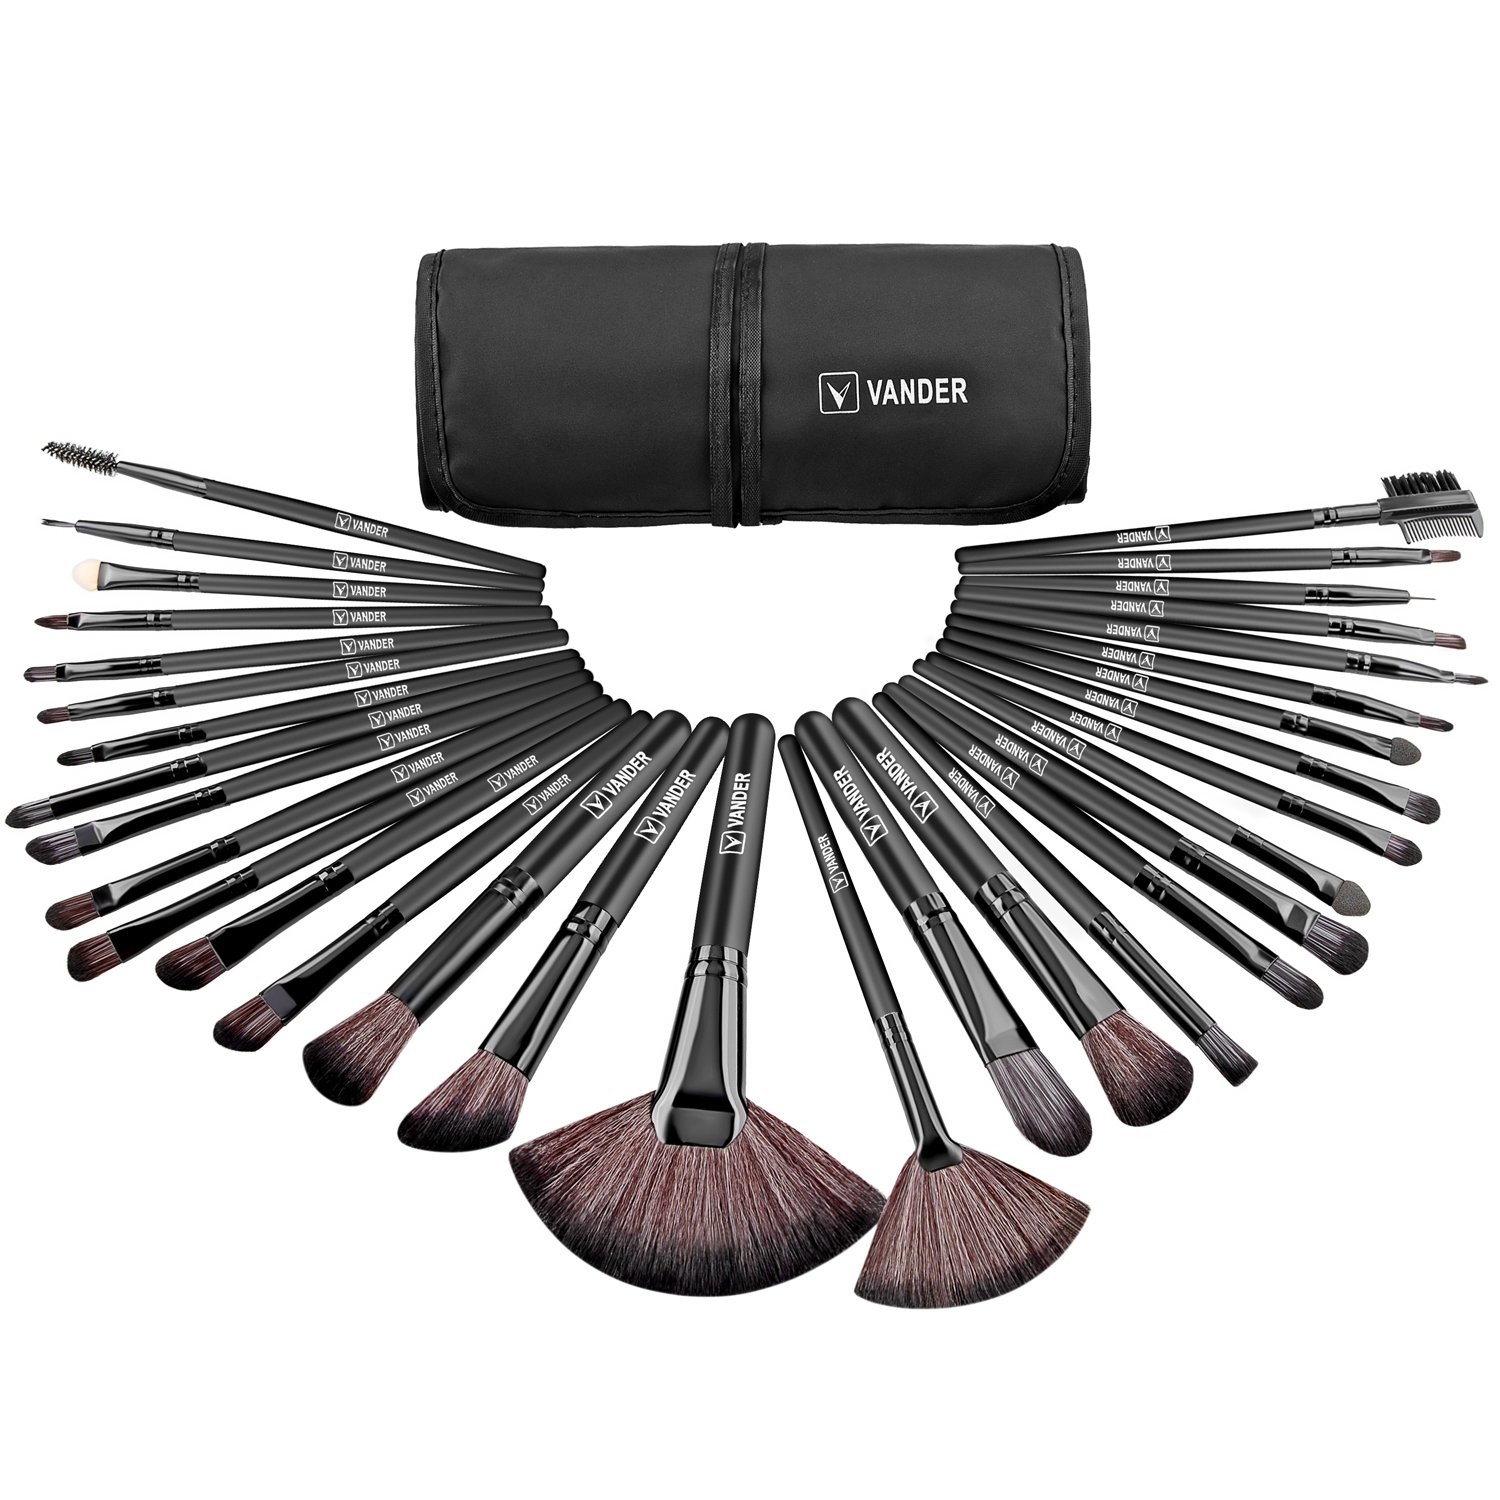 Amazon.com: VANDER Makeup Brushes 32 Pieces Professional ...